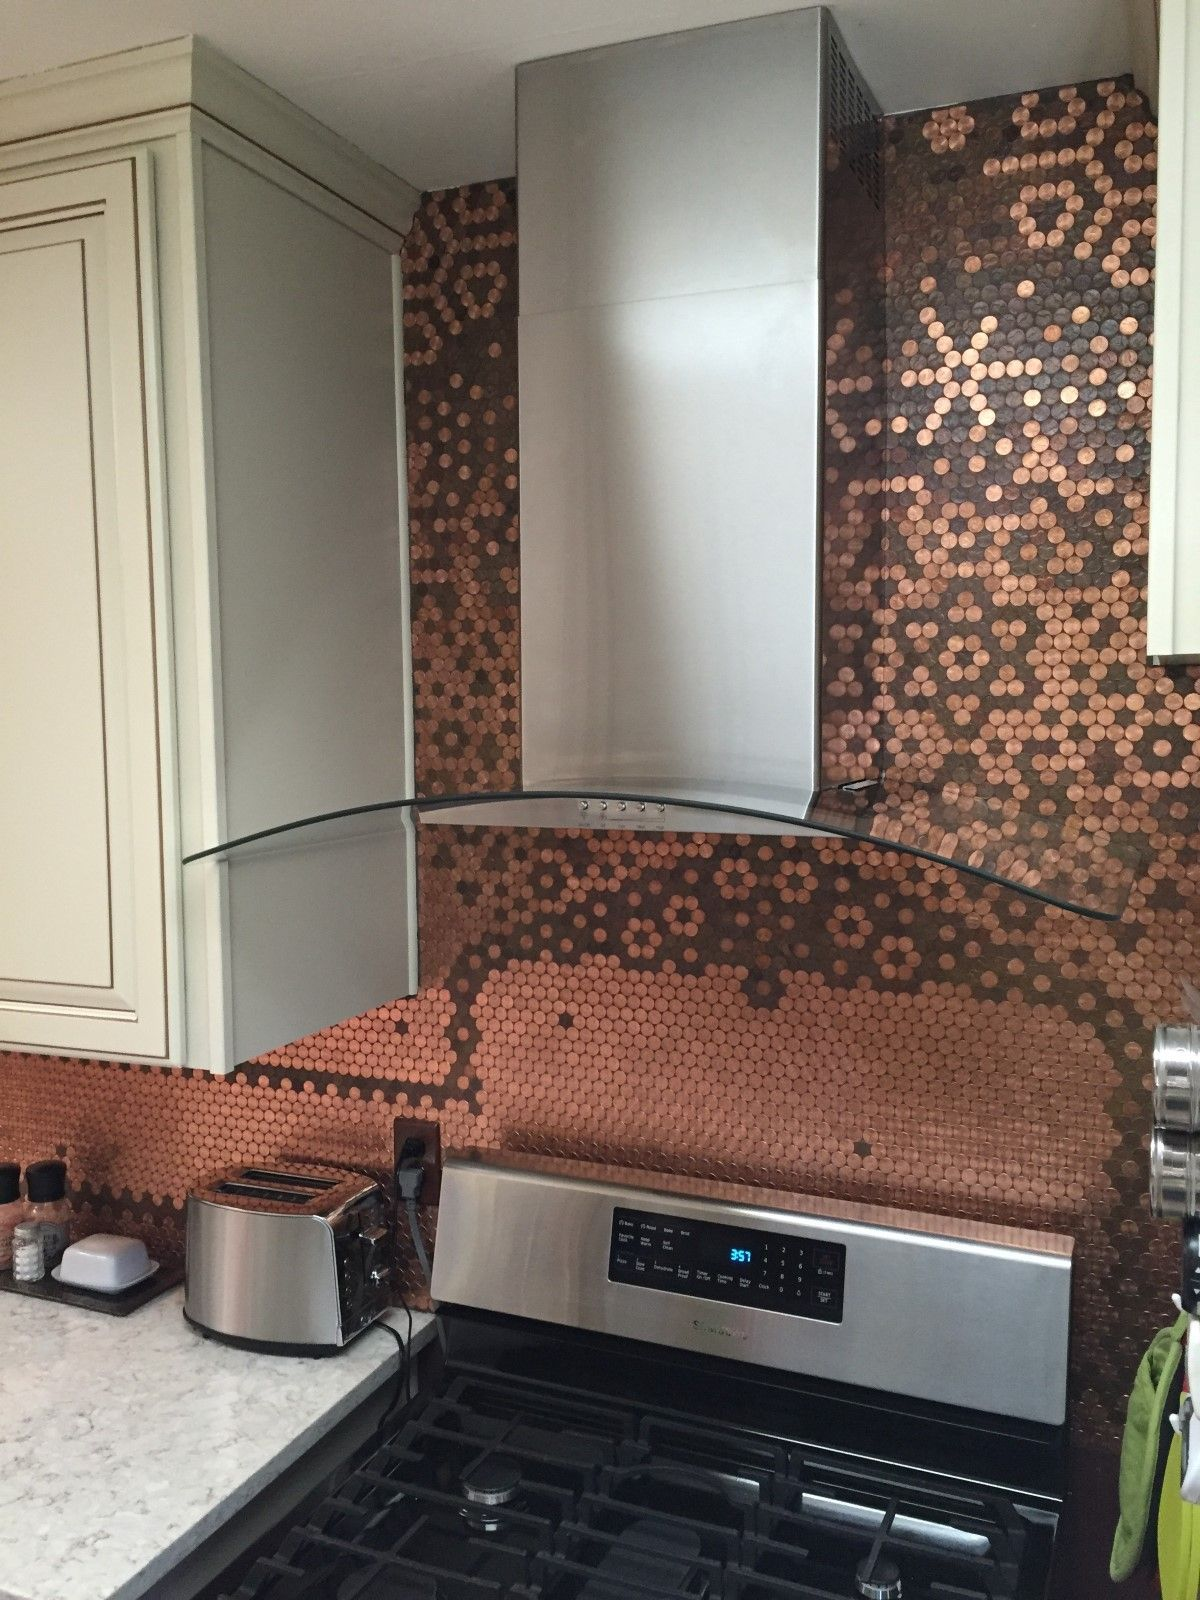 Carolynu0027s Creative Penny Backsplash Is The Centerpiece Of Her Kitchen. Her Penny  Backsplash Features Coins From My Family Birthdate Years, Indian Head, ...